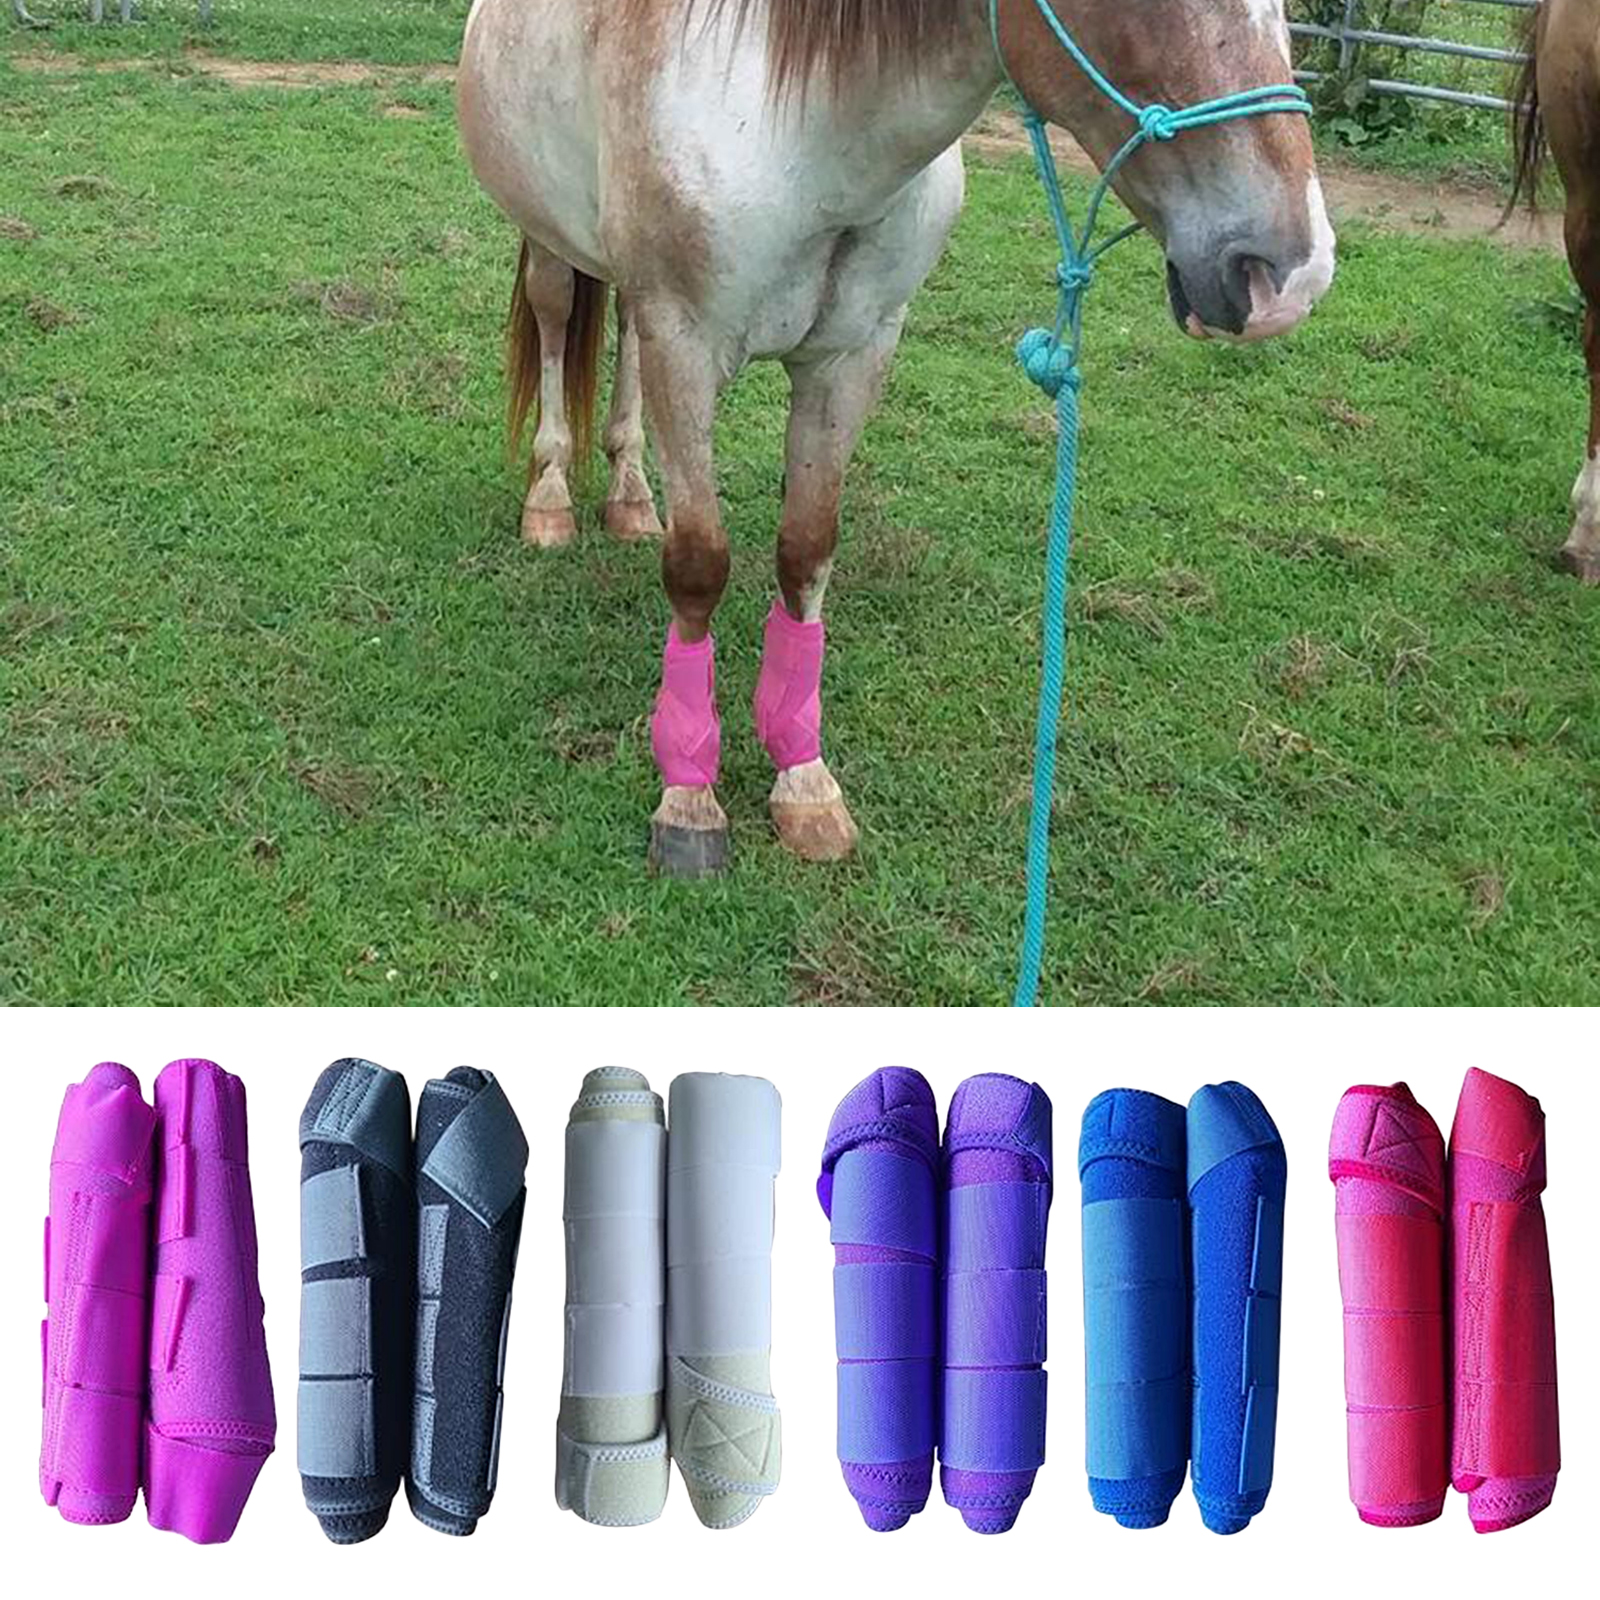 Equine Sport Horse Jumping Tendon Boot Leg Protection Brushing Supports Boot Equestrain Sports Medicine Boots Horse Leg Wraps